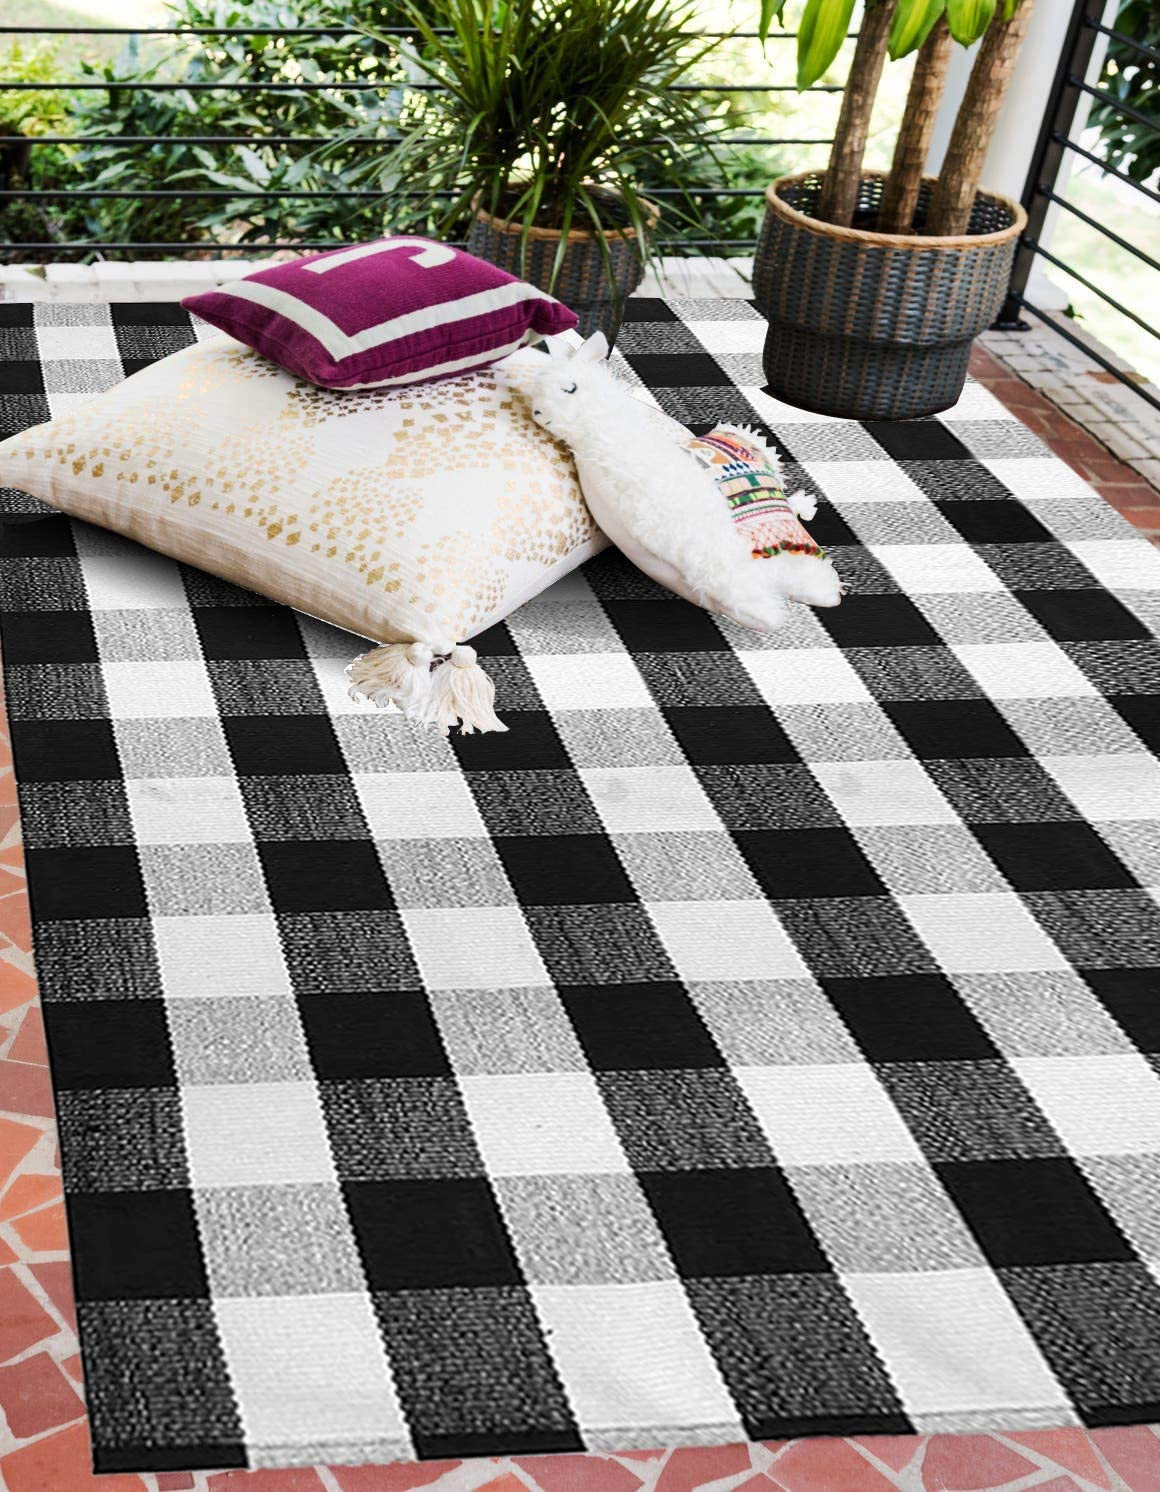 Buffalo Plaid Rug Outdoor 4 x 6 , Cotton Hand-Woven Reversible Foldable Washable Outdoor Rug Stripe for Layered Door Mats Porch Front Door 47.2 x70.8